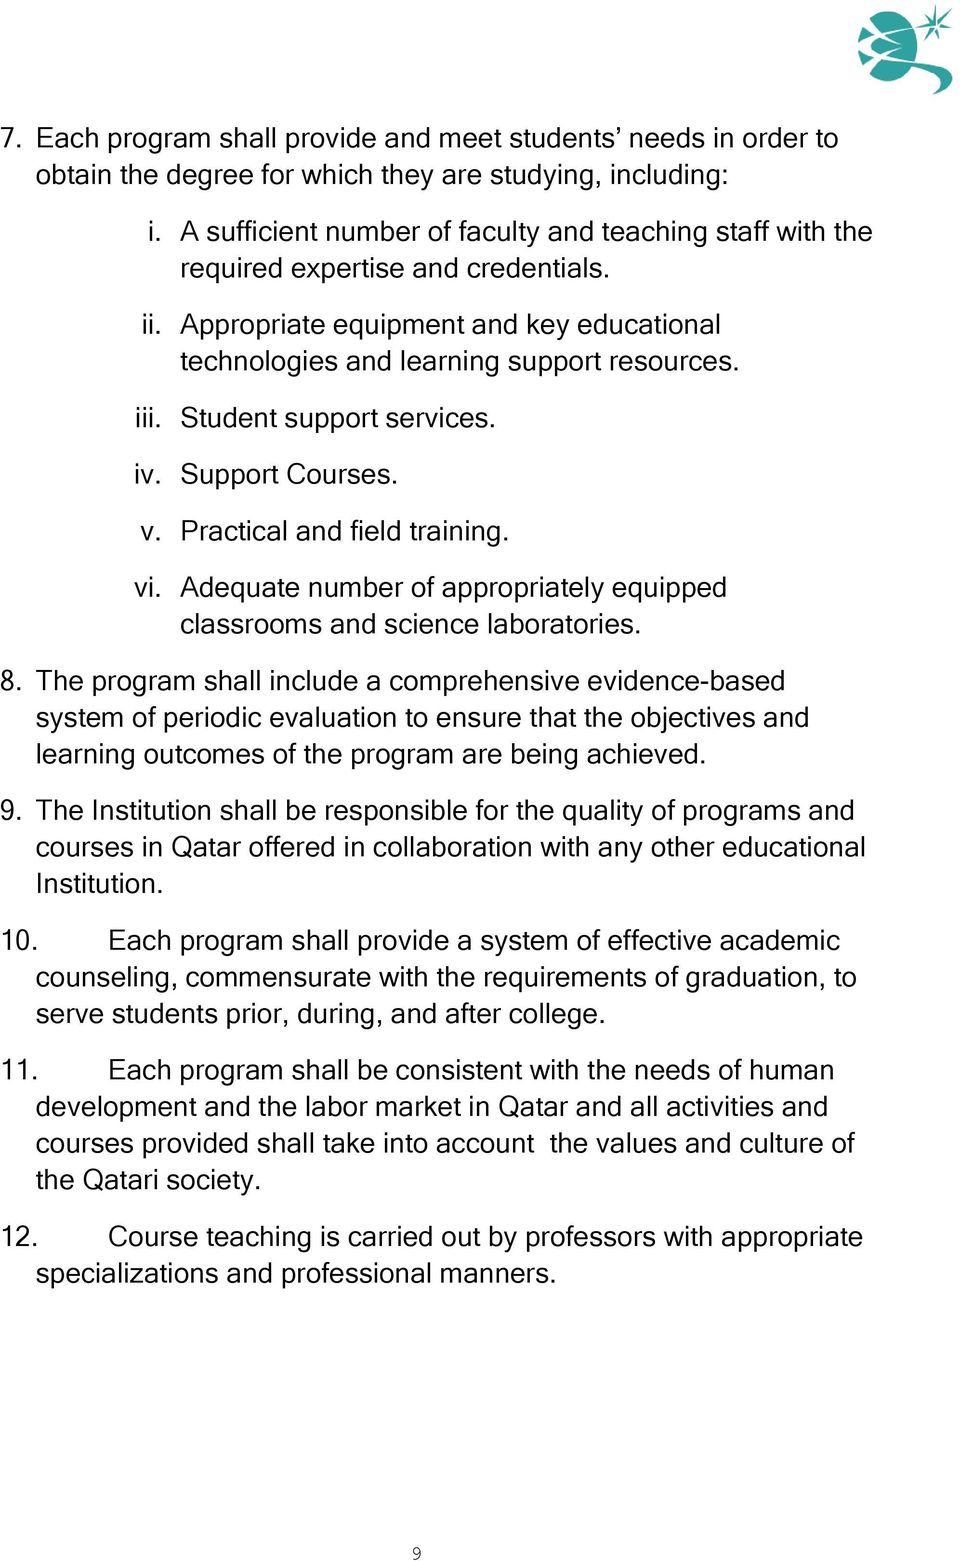 Student support services. iv. Support Courses. v. Practical and field training. vi. Adequate number of appropriately equipped classrooms and science laboratories. 8.